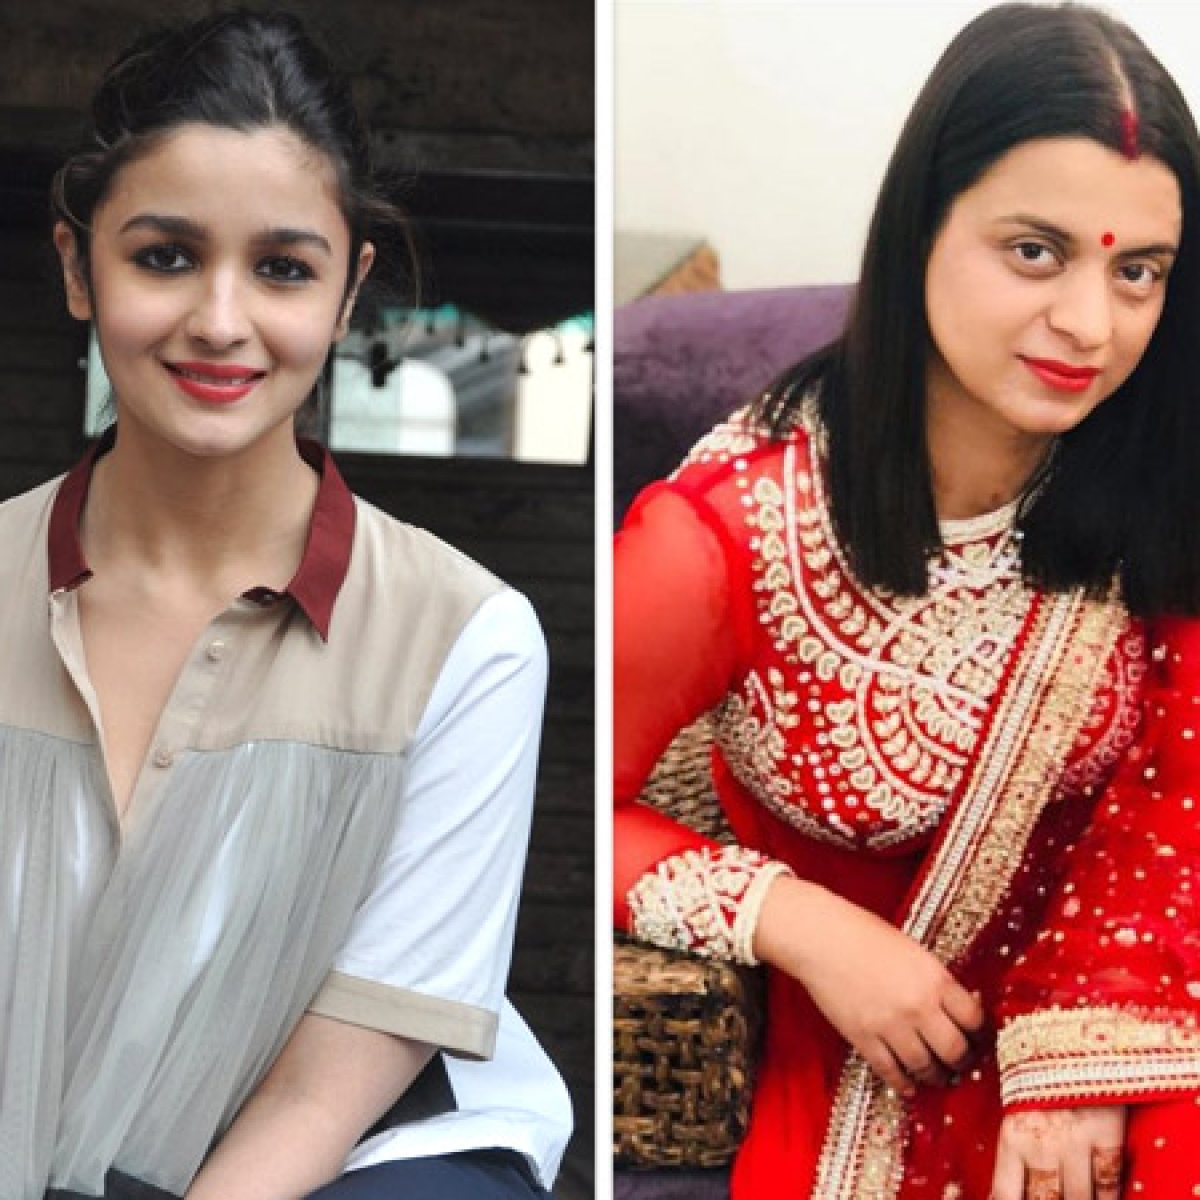 Alia Bhatt reacts to Rangoli's comment on receiving flowers, says she doesn't regret sending it